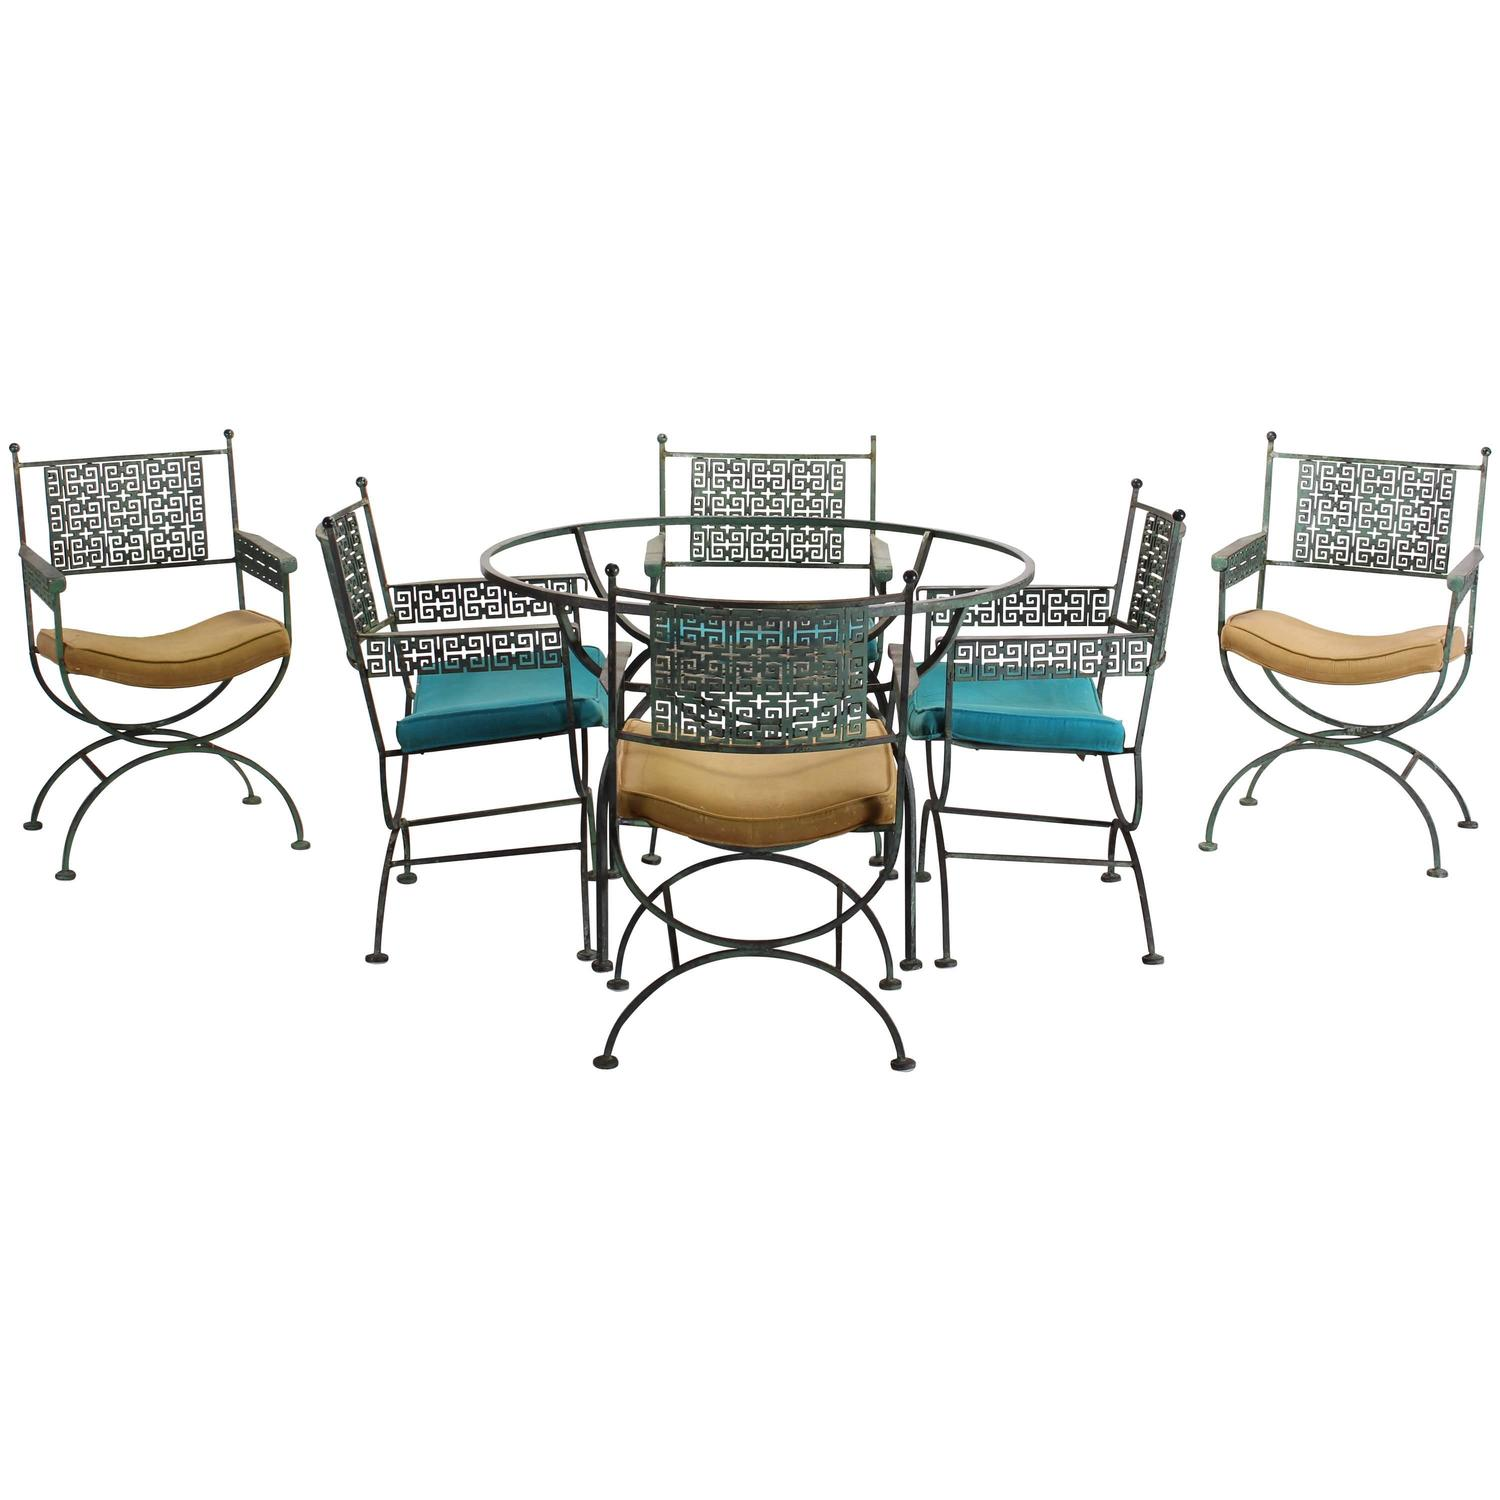 Seven Piece Wrought Iron Patio Set by Shaver Howard 1960 at 1stdibs